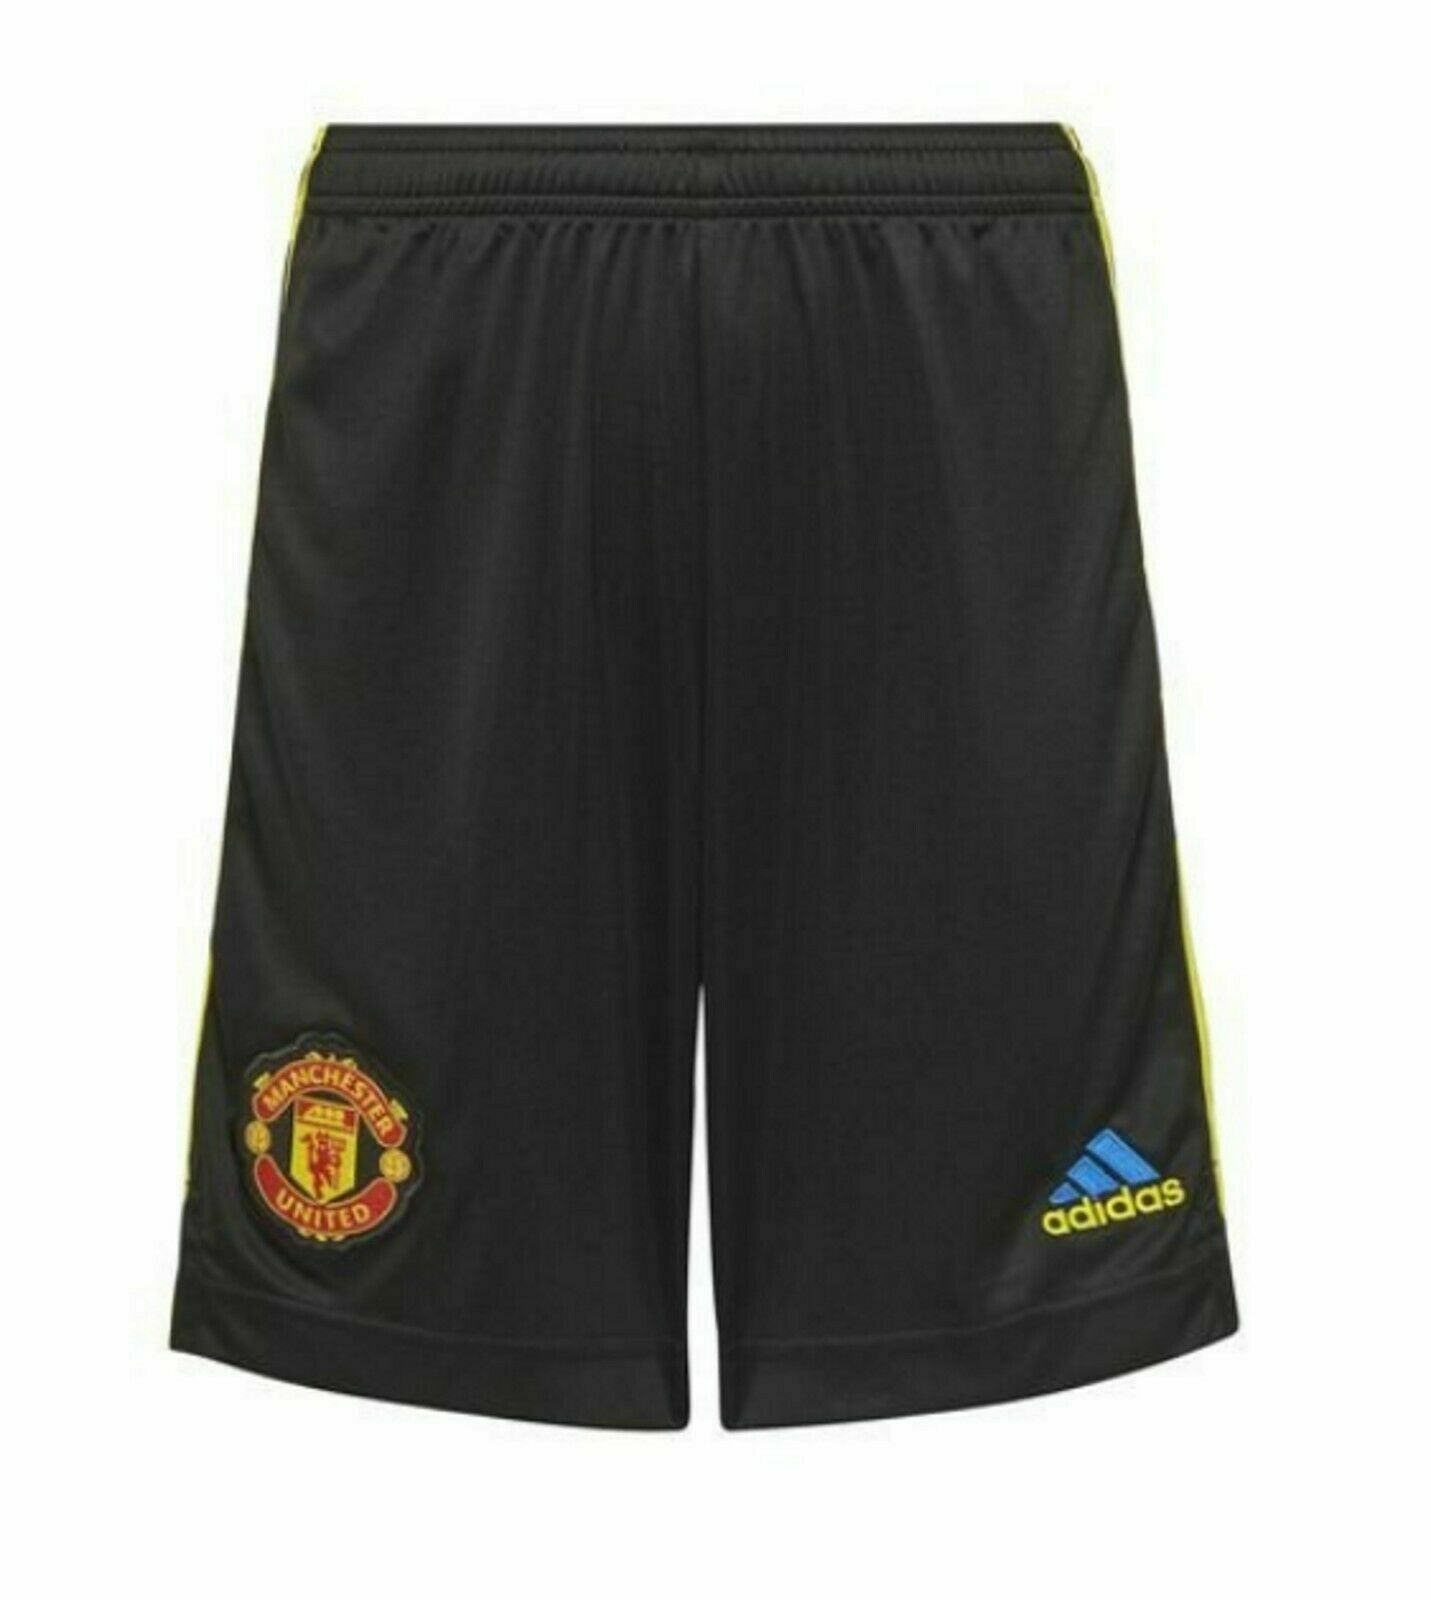 Adidas Manchester United Third Shorts 2021/22 Black/Yellow - Brand New With Tags